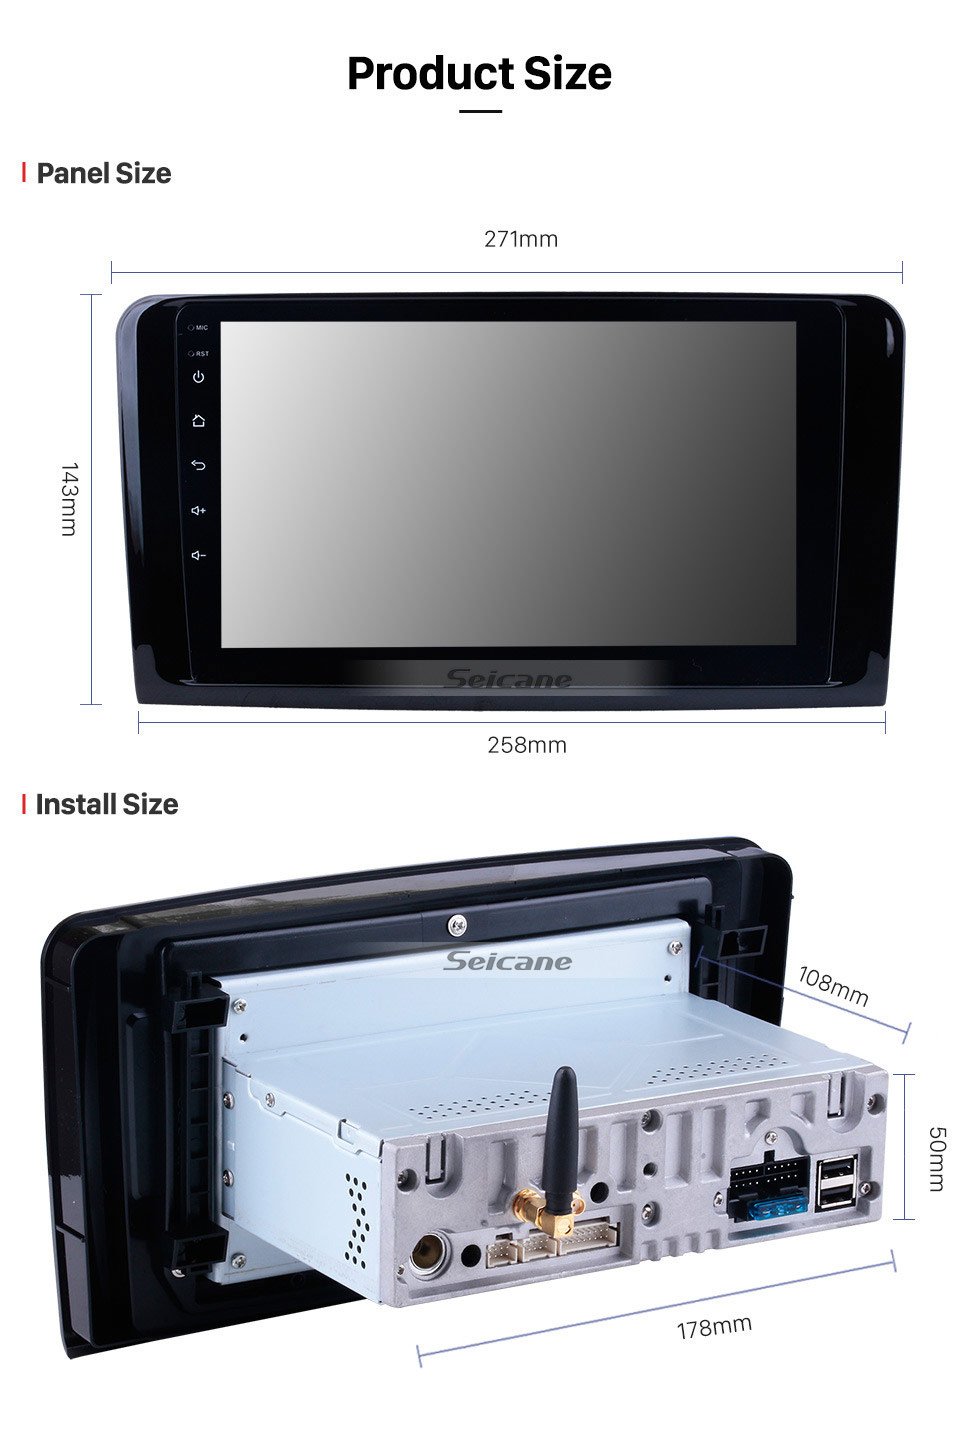 Seicane Android 9.0 2005-2012 Mercedes Benz GL Class X164 GL300 GL350 GL420 GL450 GL500 GL550 ML Class W164 Autoradio Navigation Car Audio System 1024*600 Multi-touch Capacitive Screen Radio RDS Blutooth Music DVD 4G WiFi Mirror Link OBD2